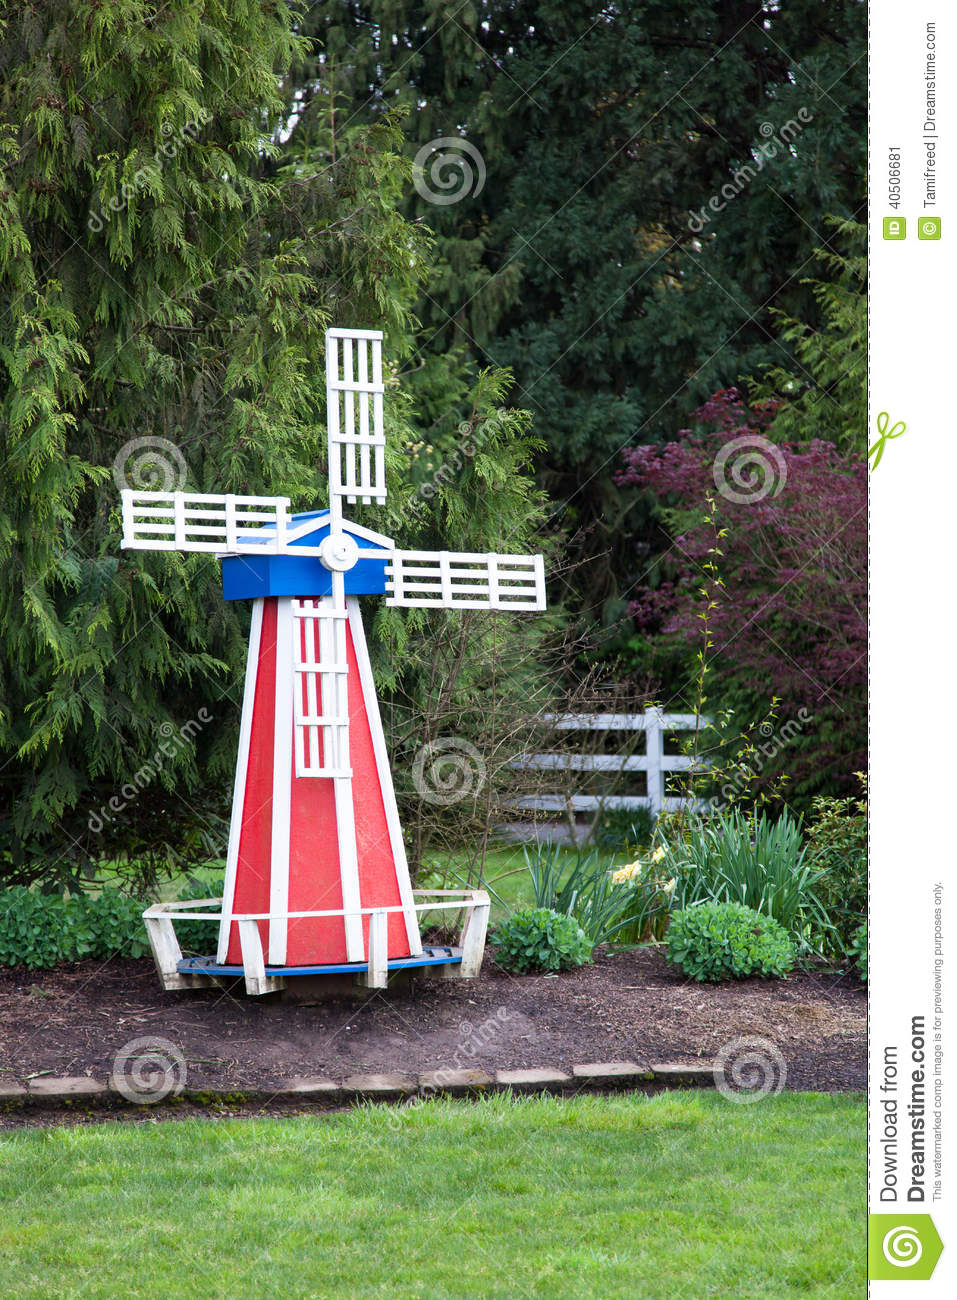 D coration de jardin de moulin vent photo stock image for Moulin jardin deco